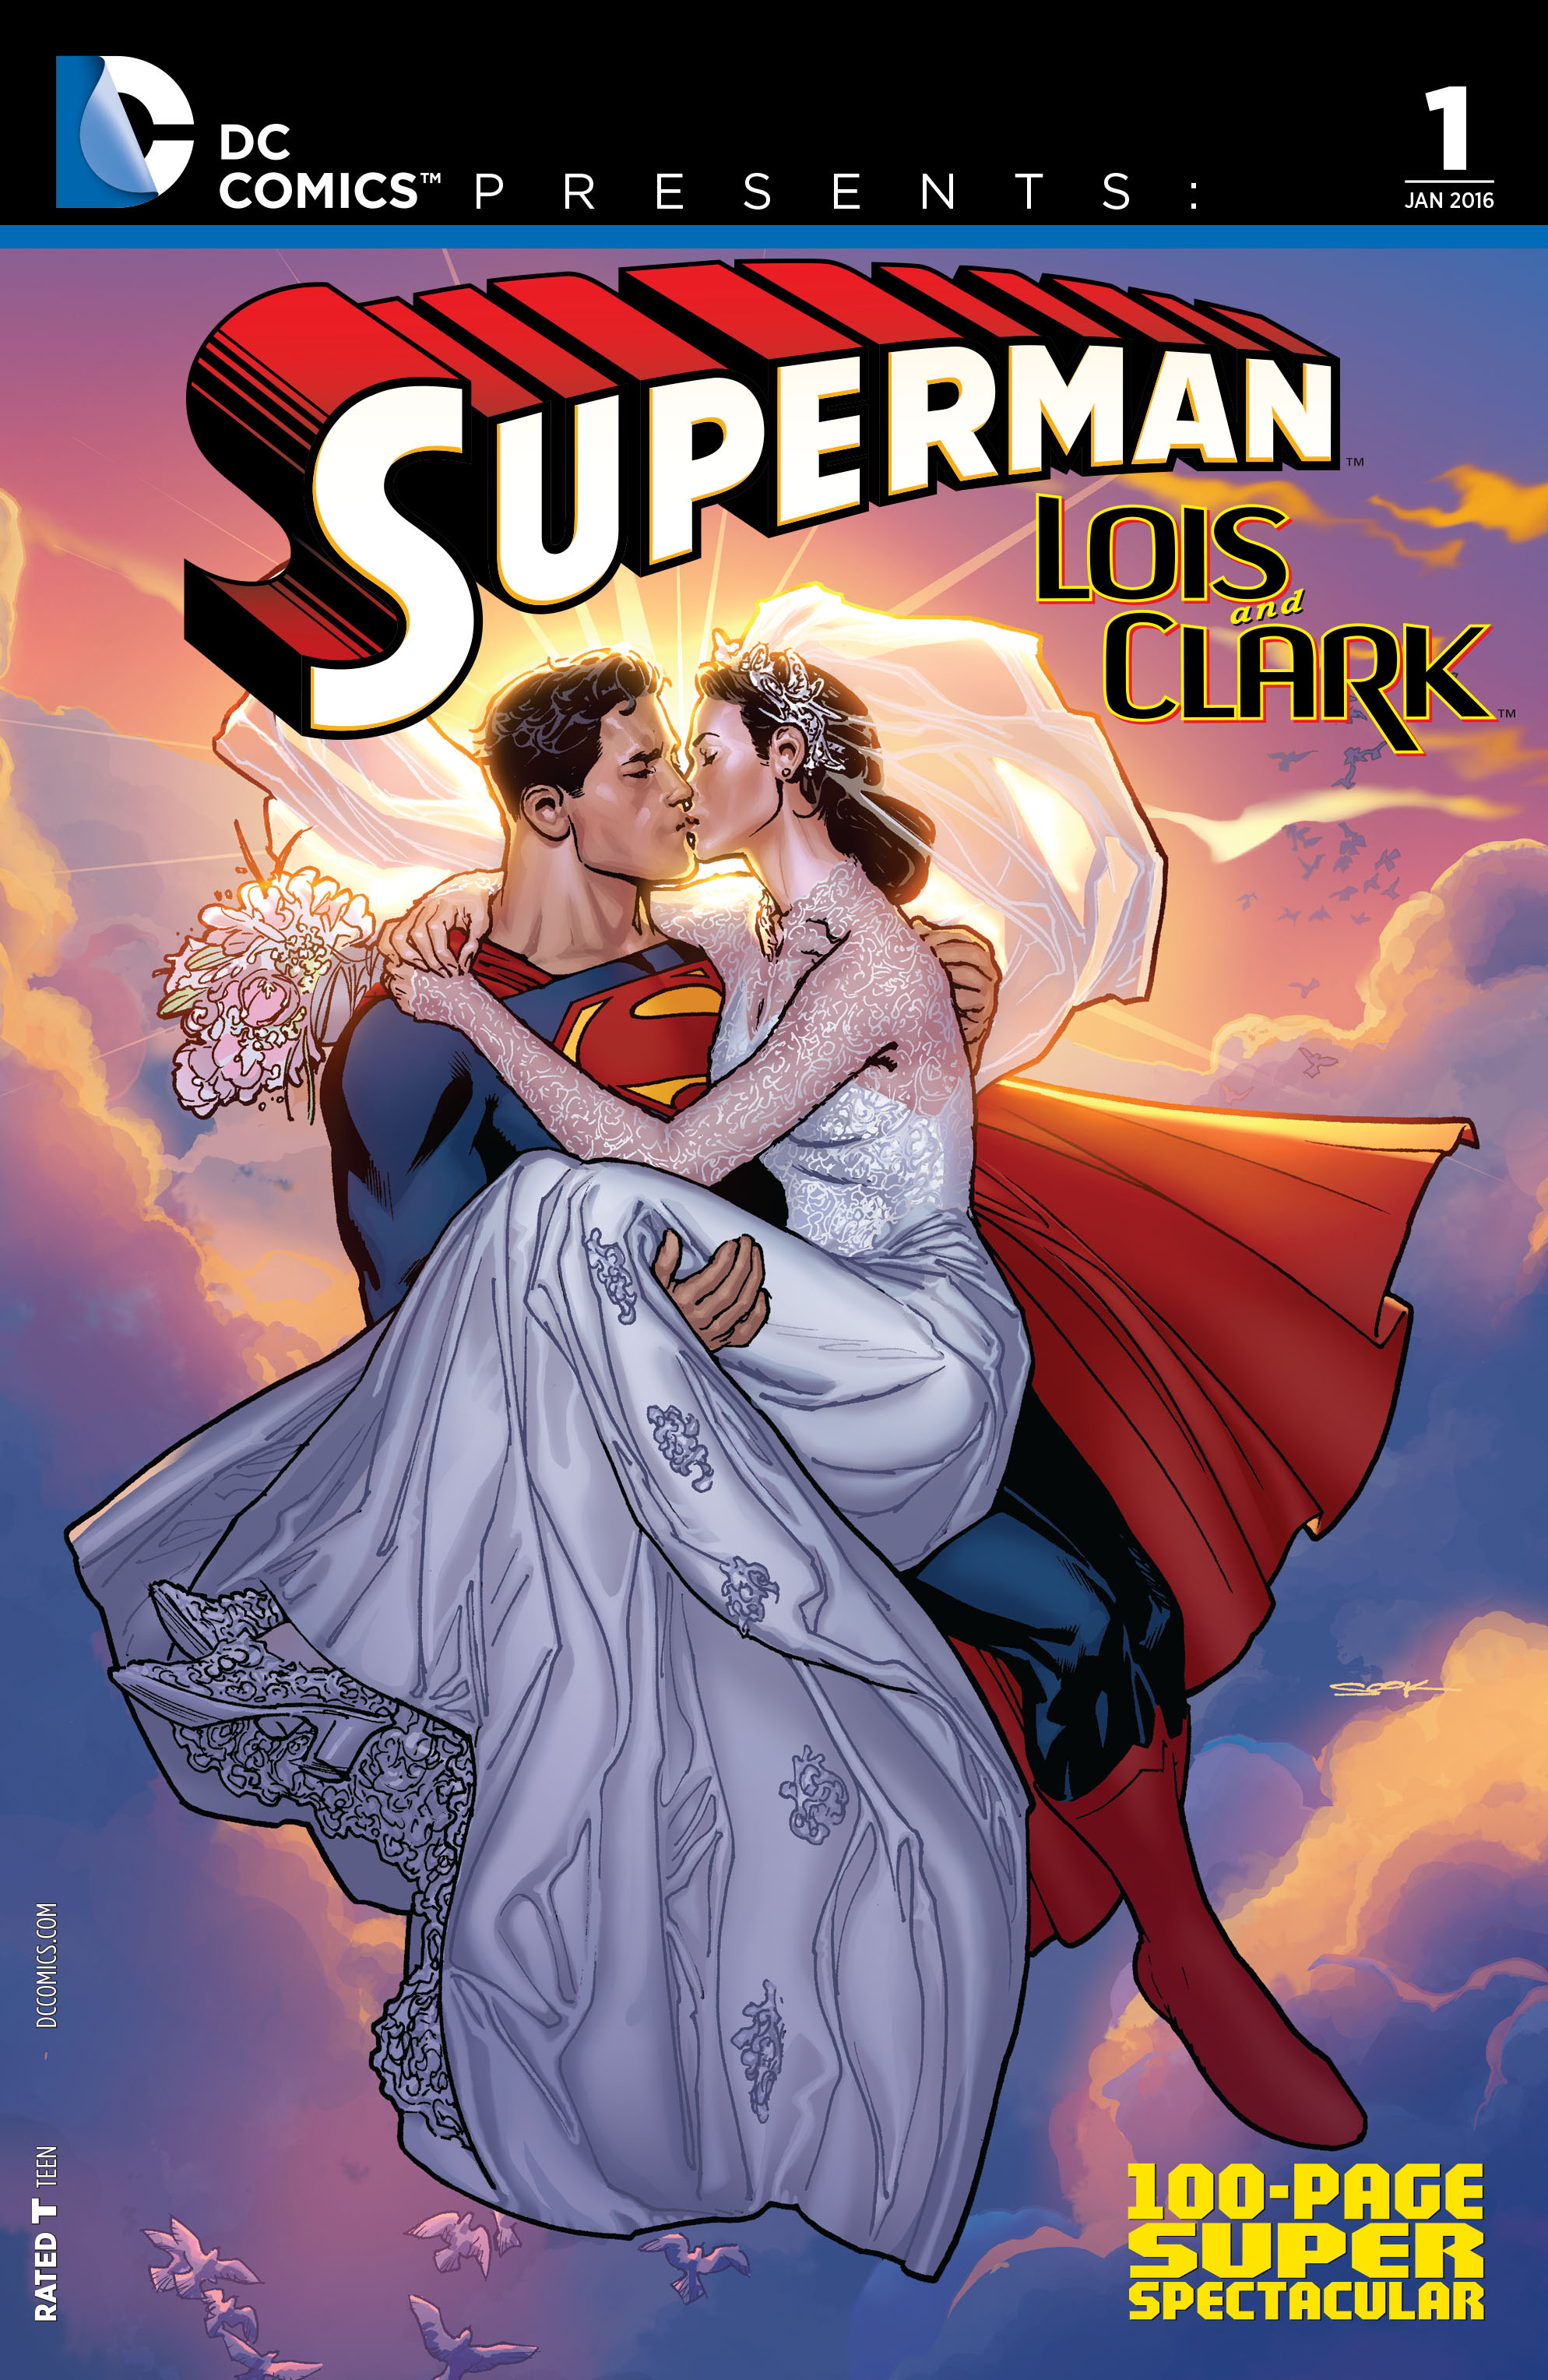 DC Comics Presents: Superman - Lois and Clark 100-Page Super Spectacular Vol 1 1